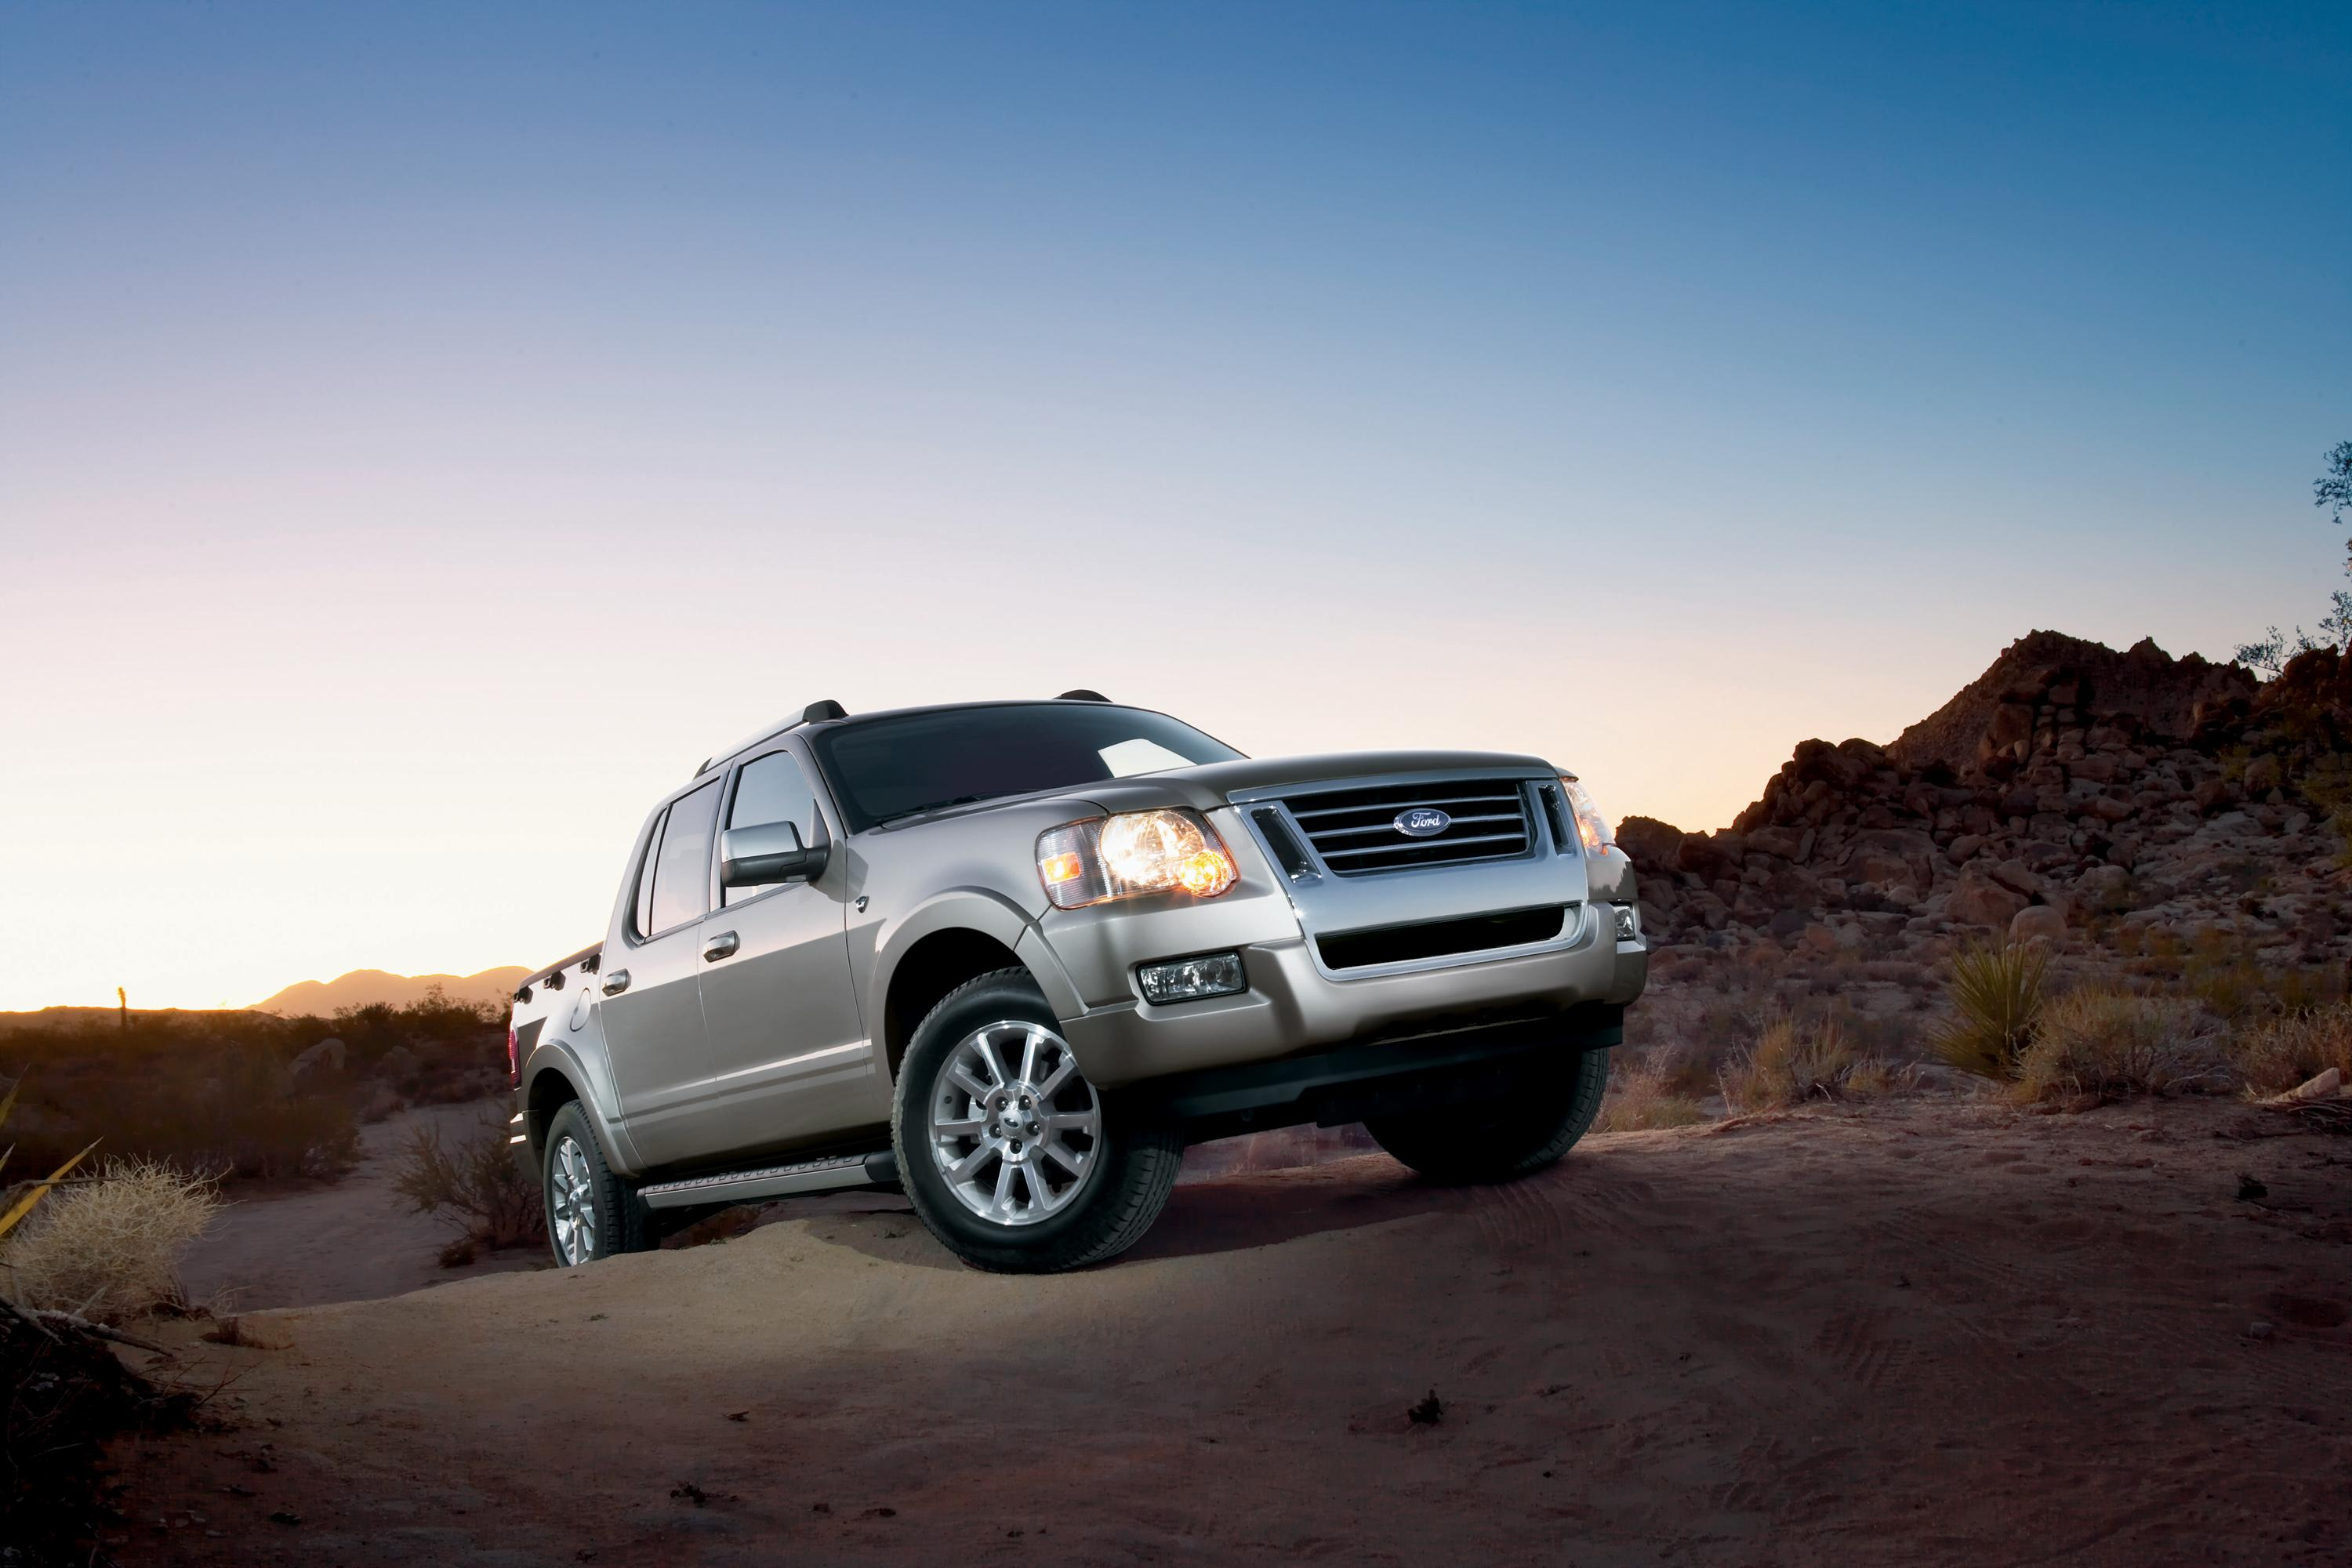 2008 ford explorer sport trac review gallery top speed. Black Bedroom Furniture Sets. Home Design Ideas